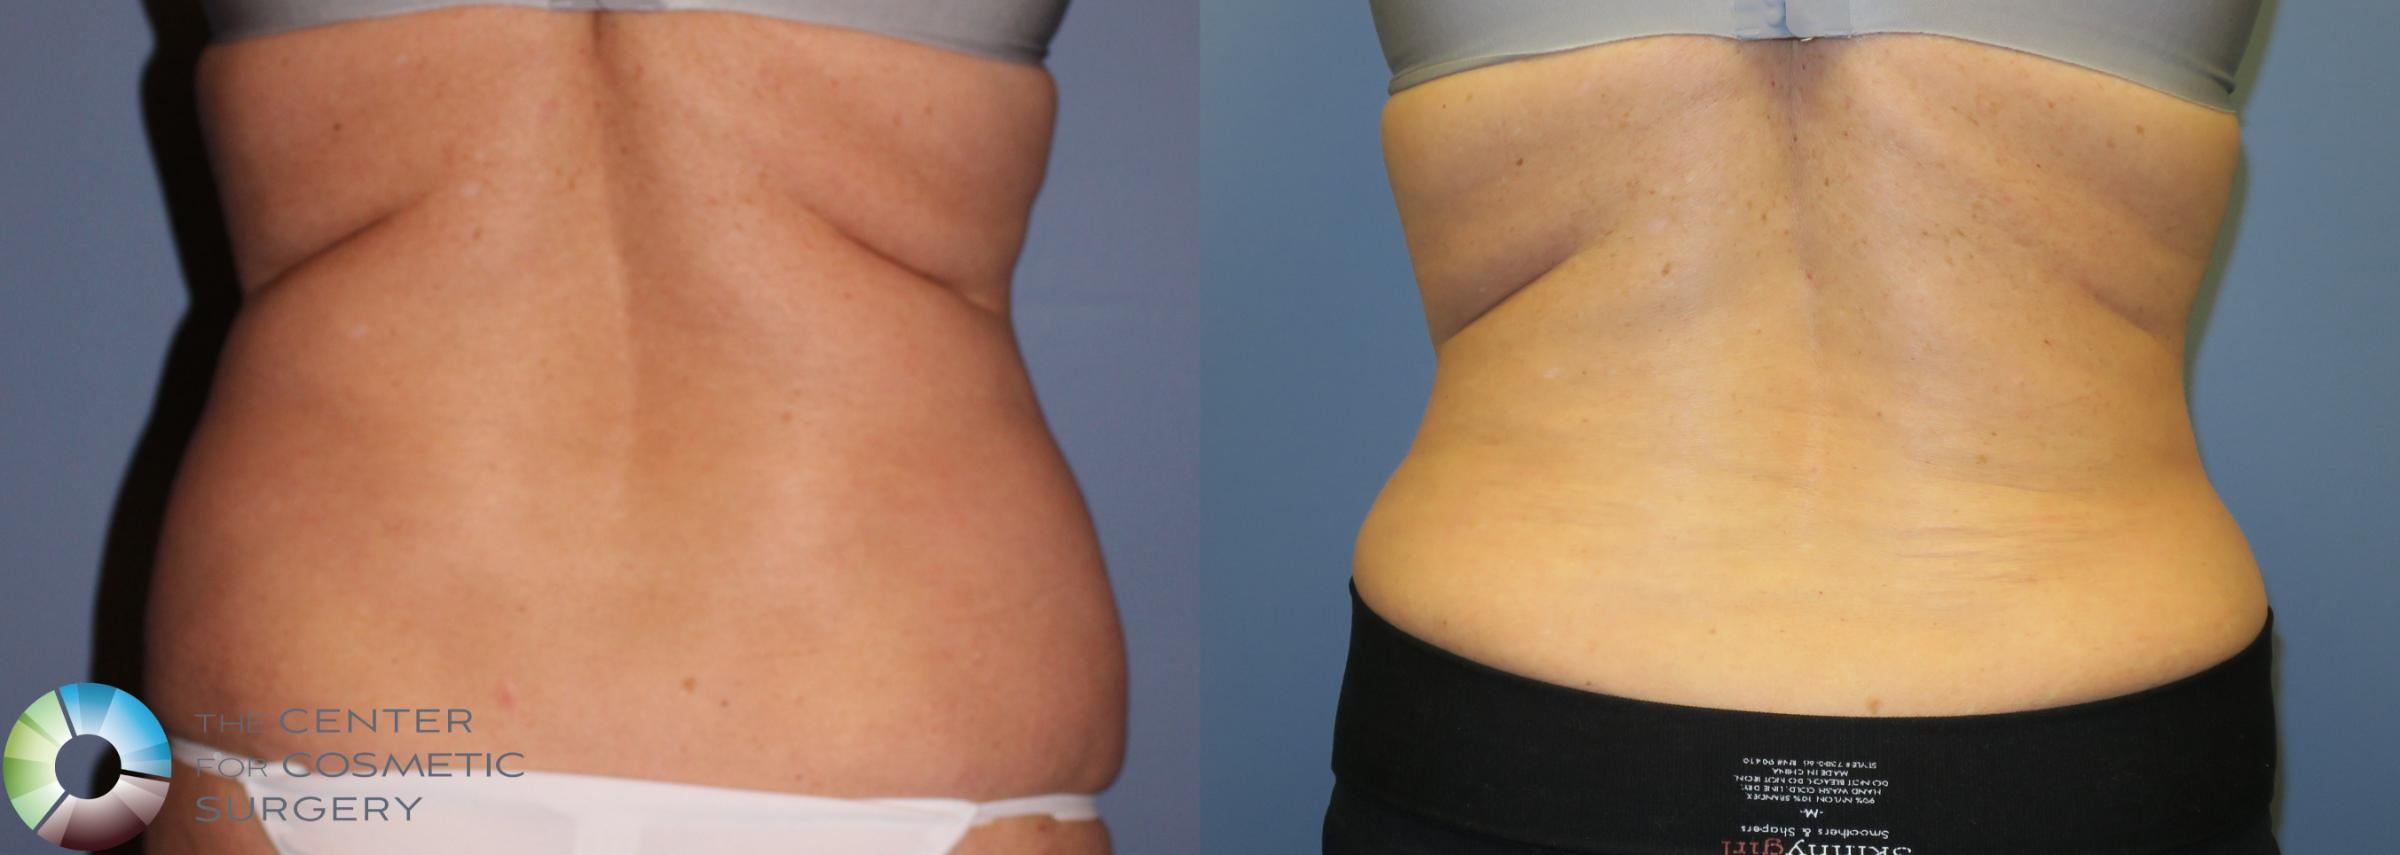 Tummy Tuck Case 853 Before & After View #4 | Golden, CO | The Center for Cosmetic Surgery